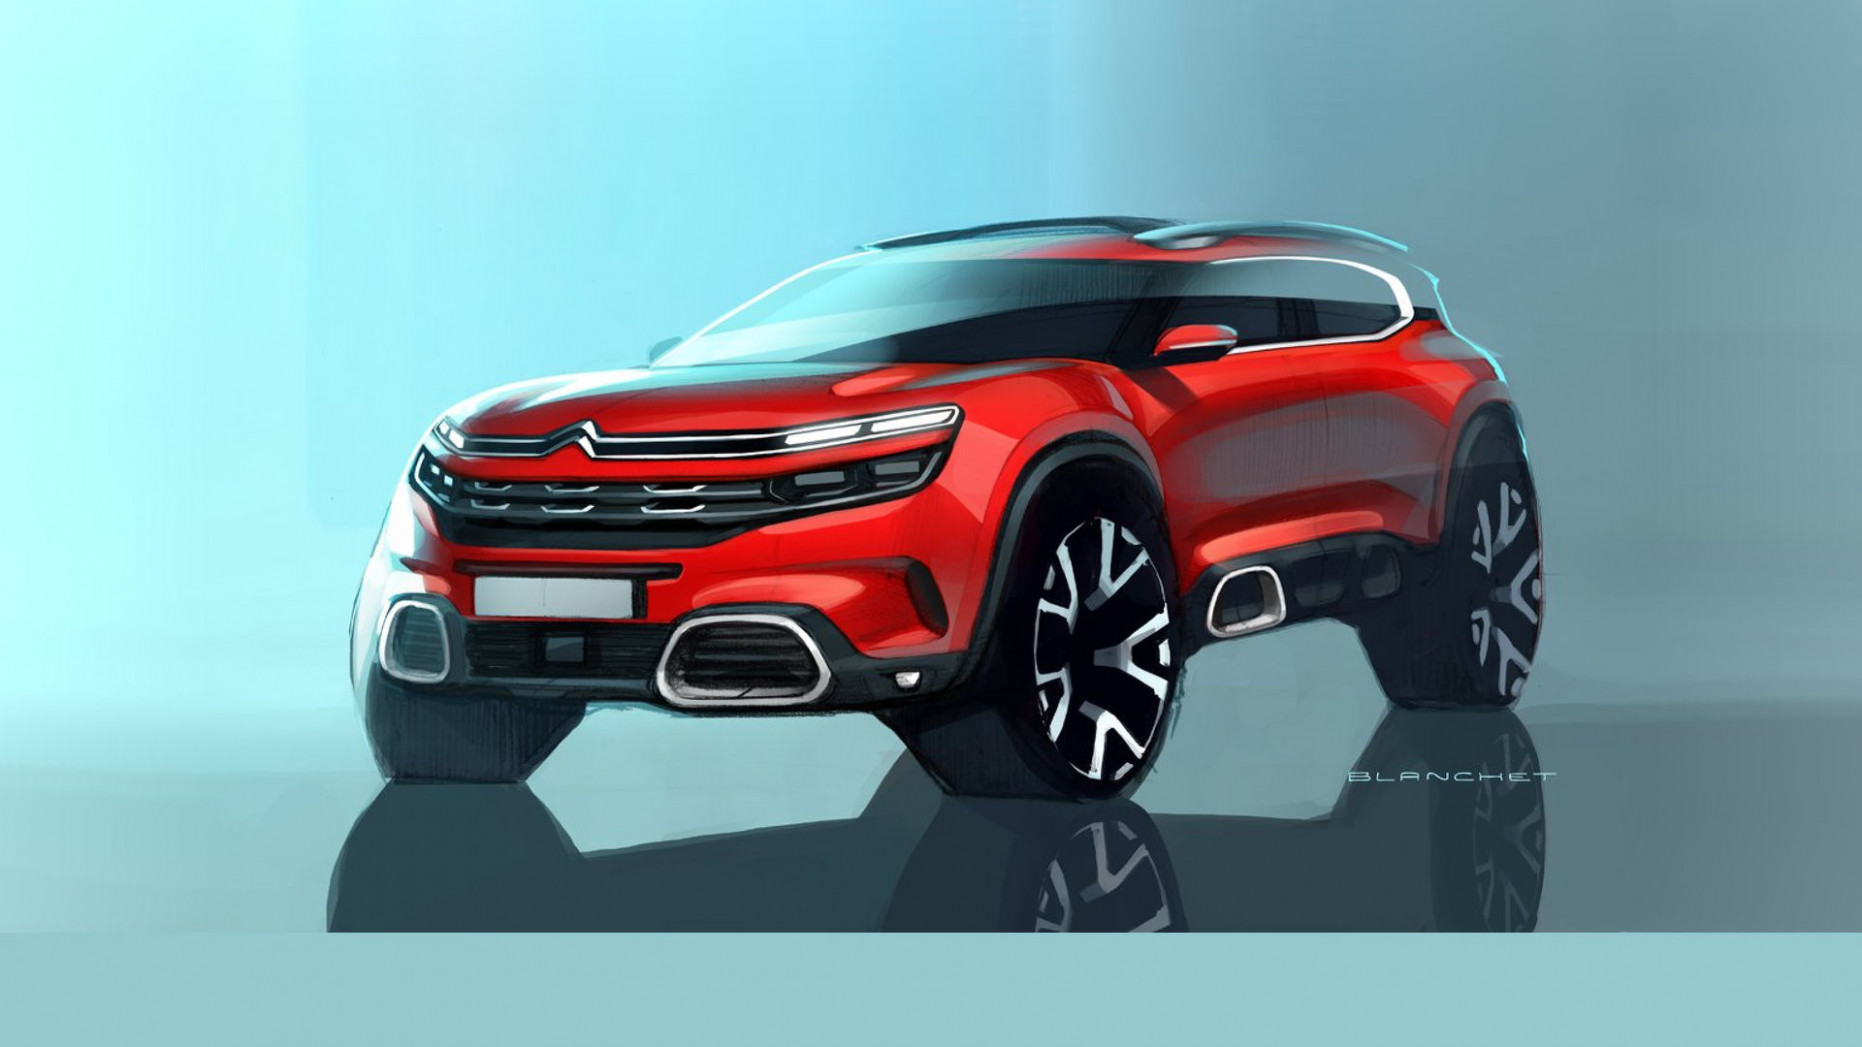 Redesign and Concept 2022 Citroen C5